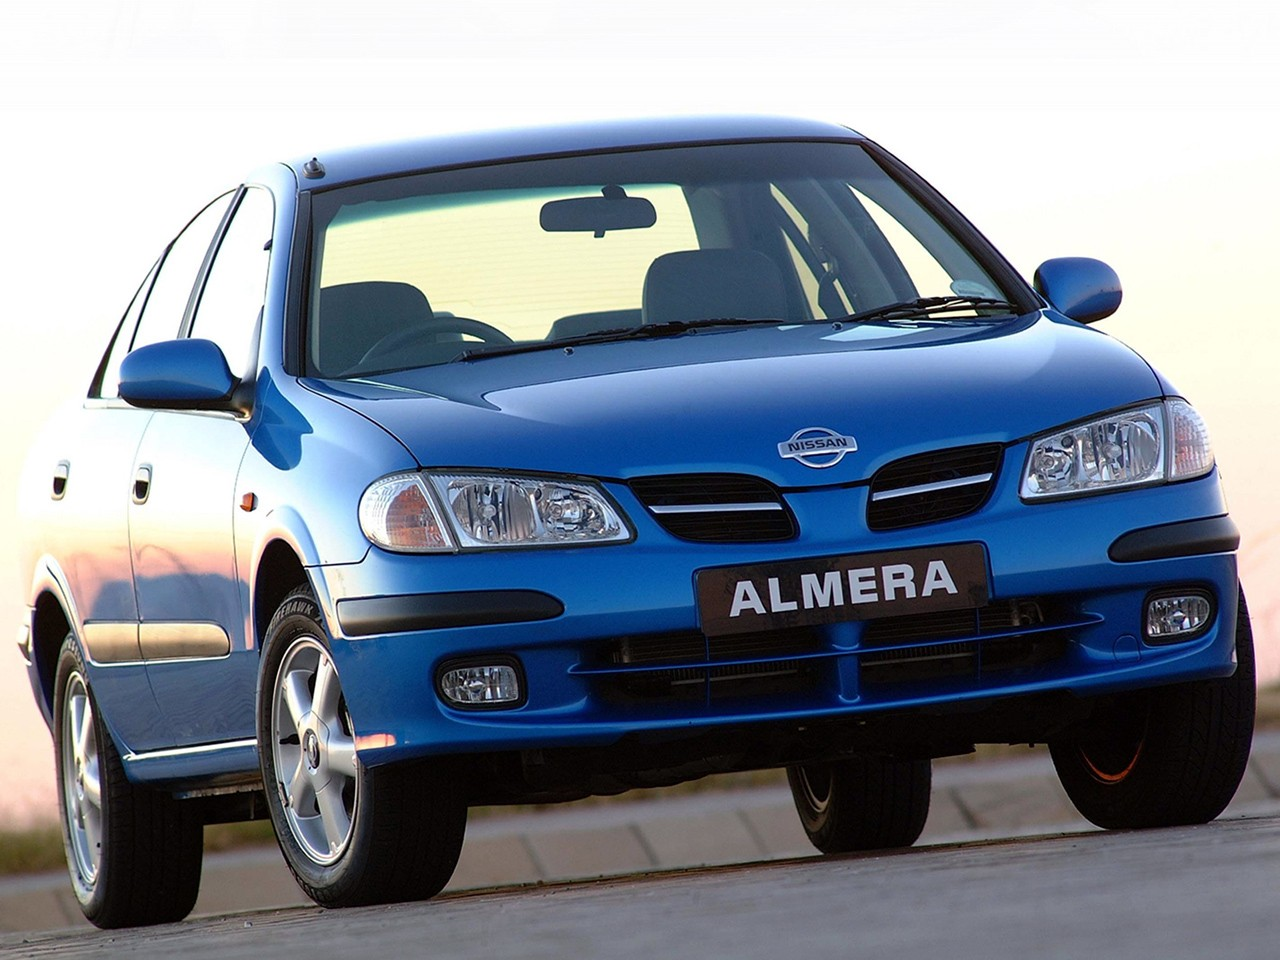 nissan almera pulsar 4 doors specs 2000 2001 2002 2003 2004 2005 2006 2007. Black Bedroom Furniture Sets. Home Design Ideas